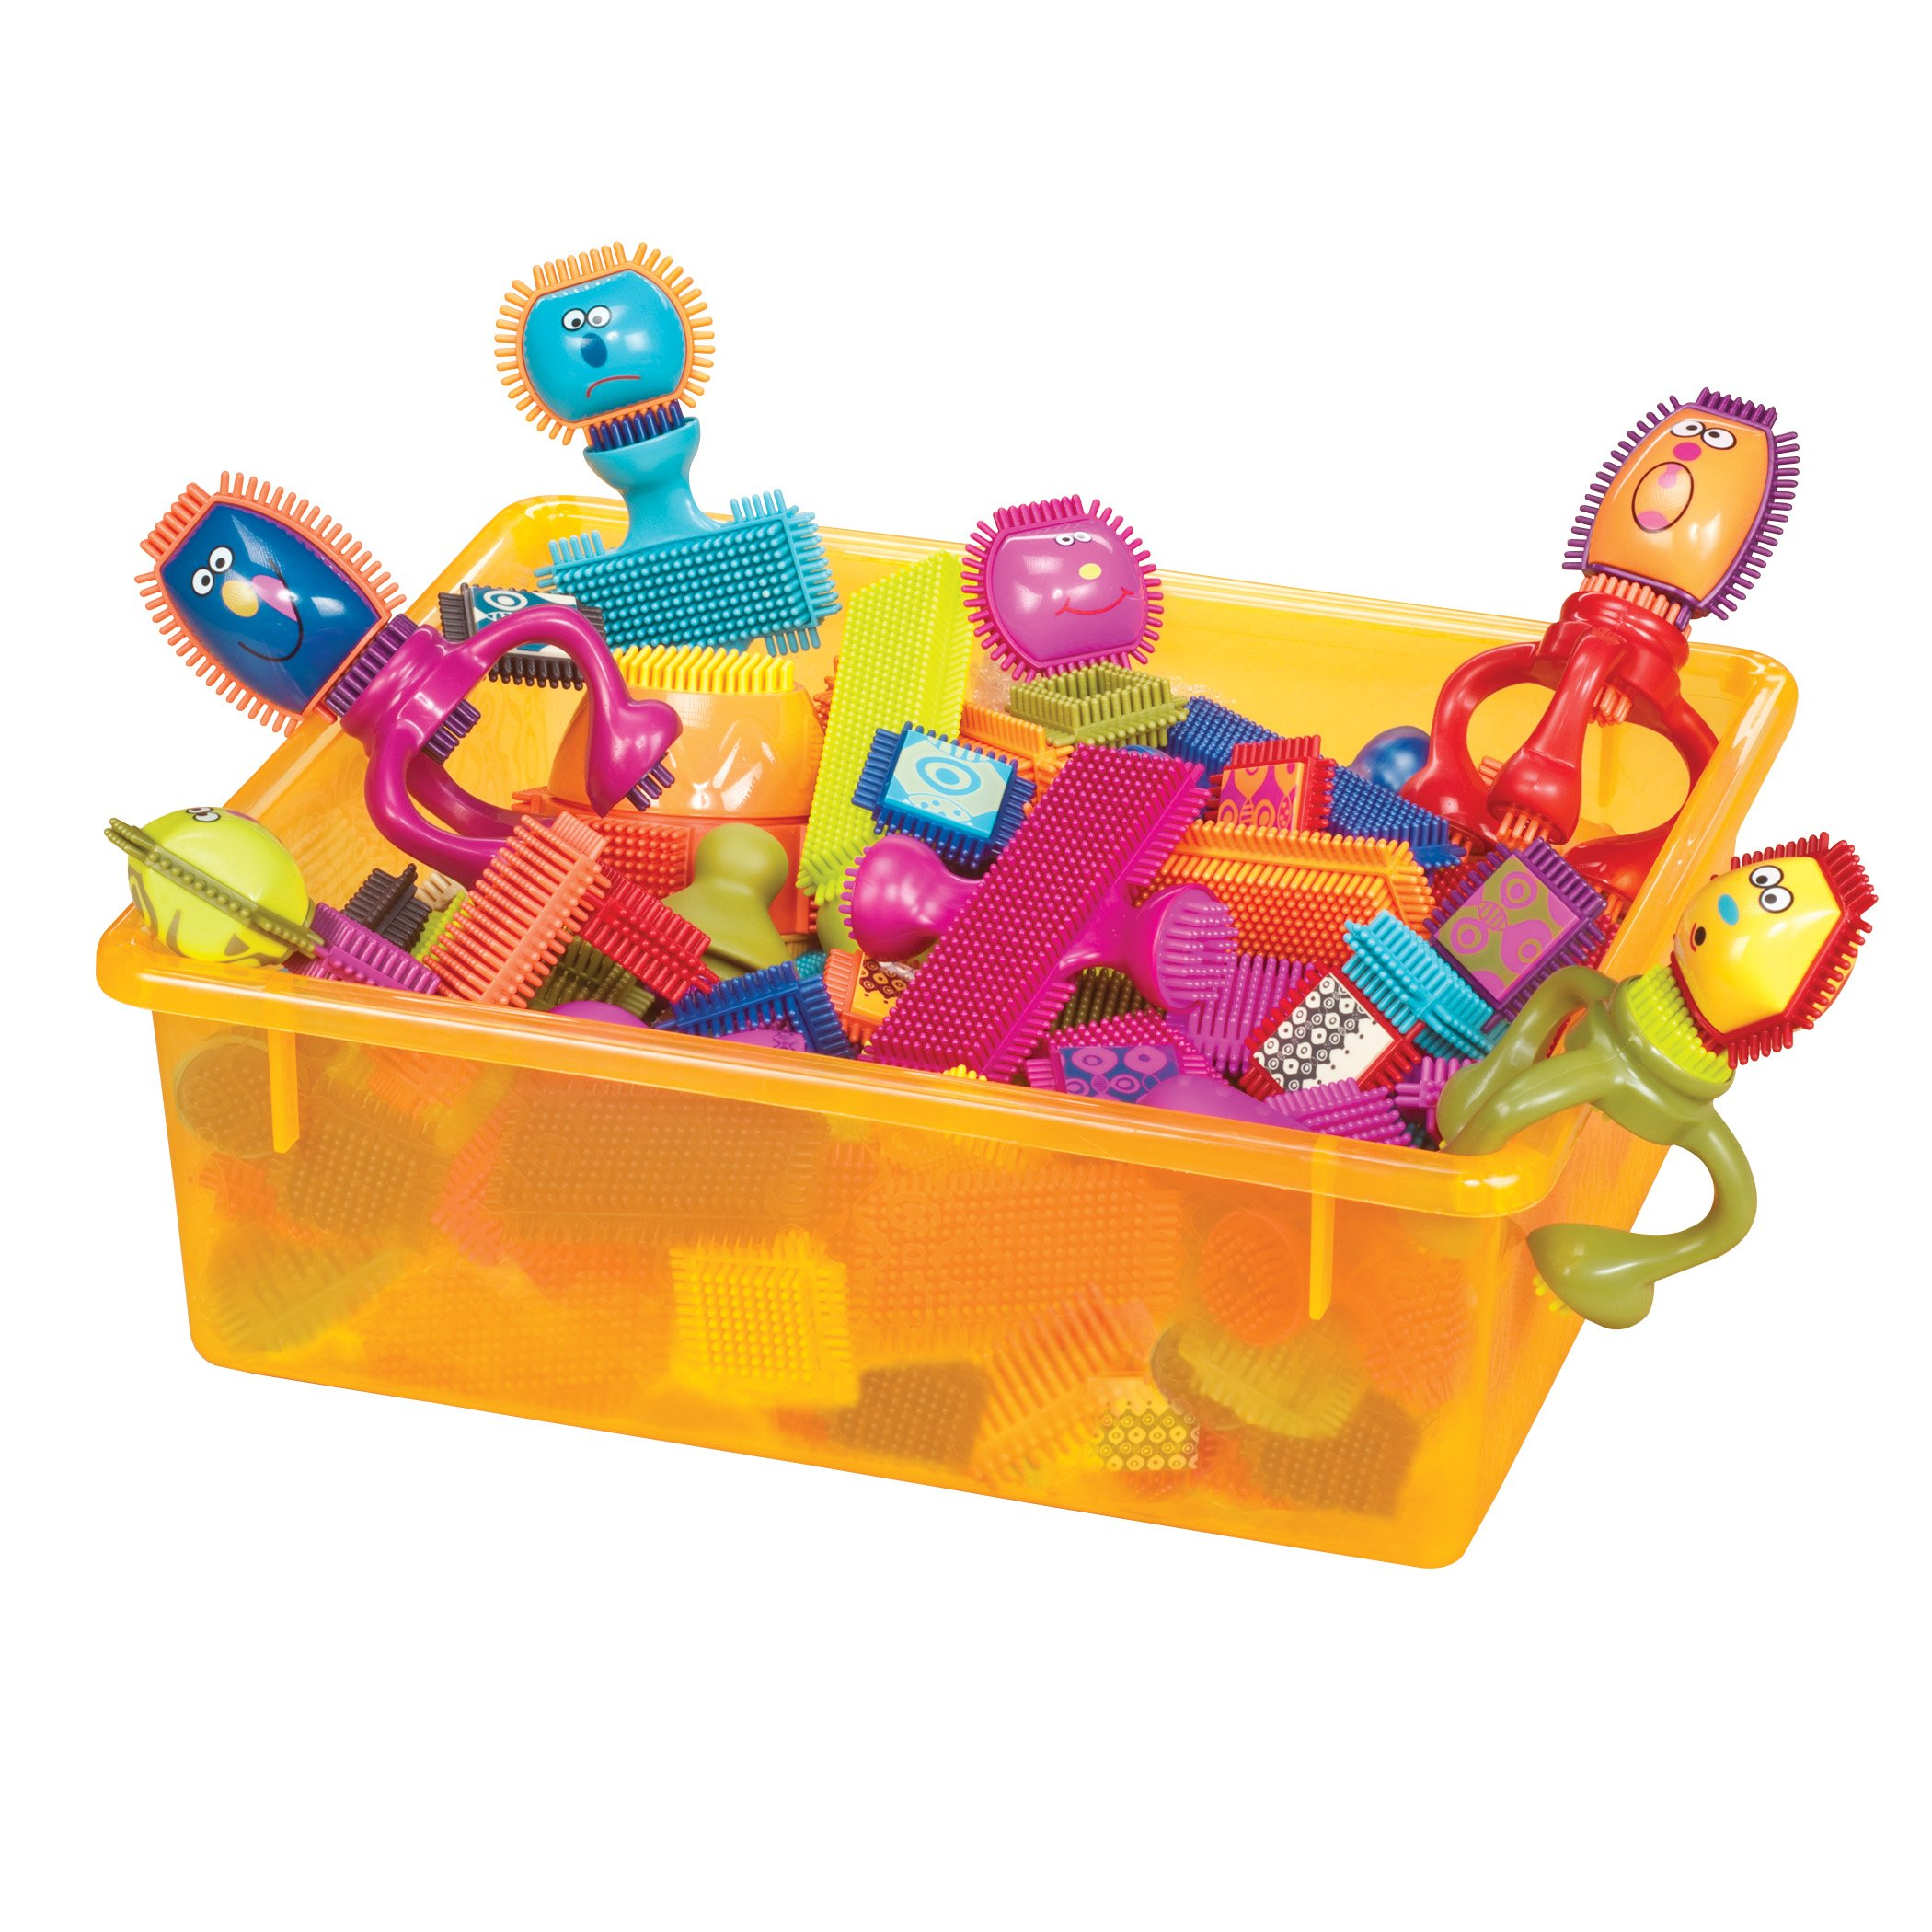 B. toys - Bristle Block Spinaroos - The Official Bristle Blocks - Toy Building Blocks for Toddlers (75Piece)